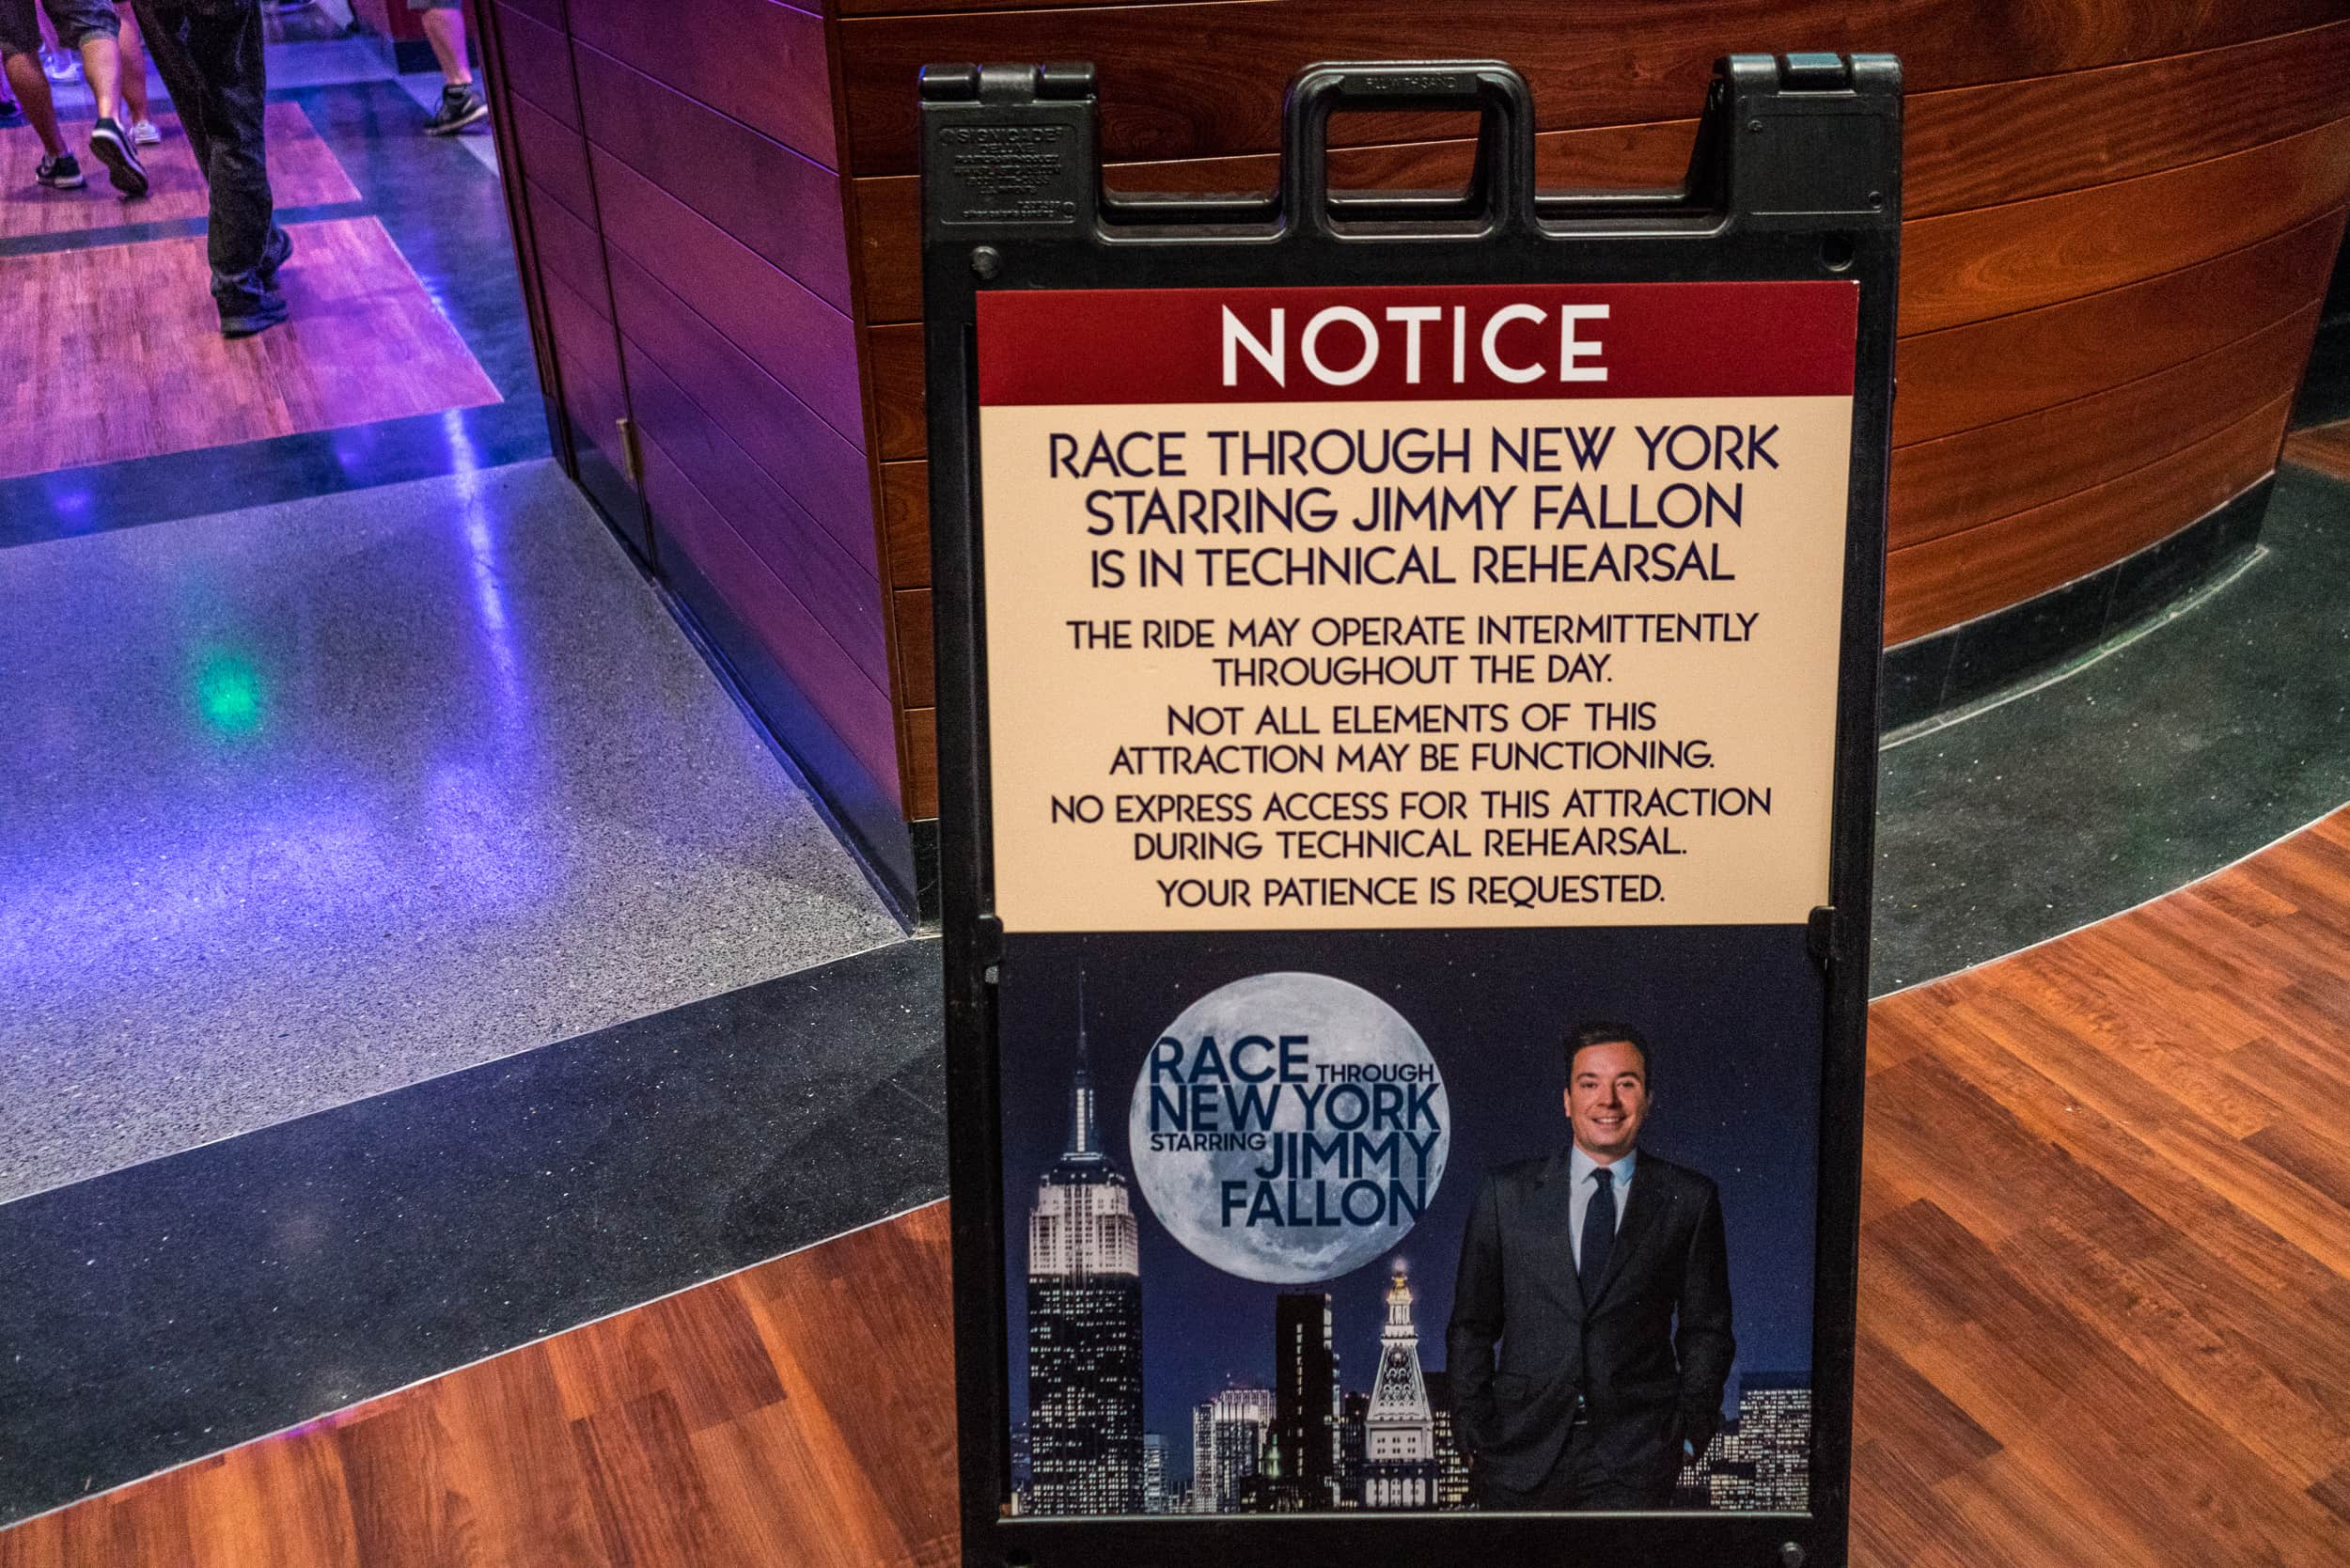 TECHNICAL REHEARSALS: Race Through New York Starring Jimmy Fallon